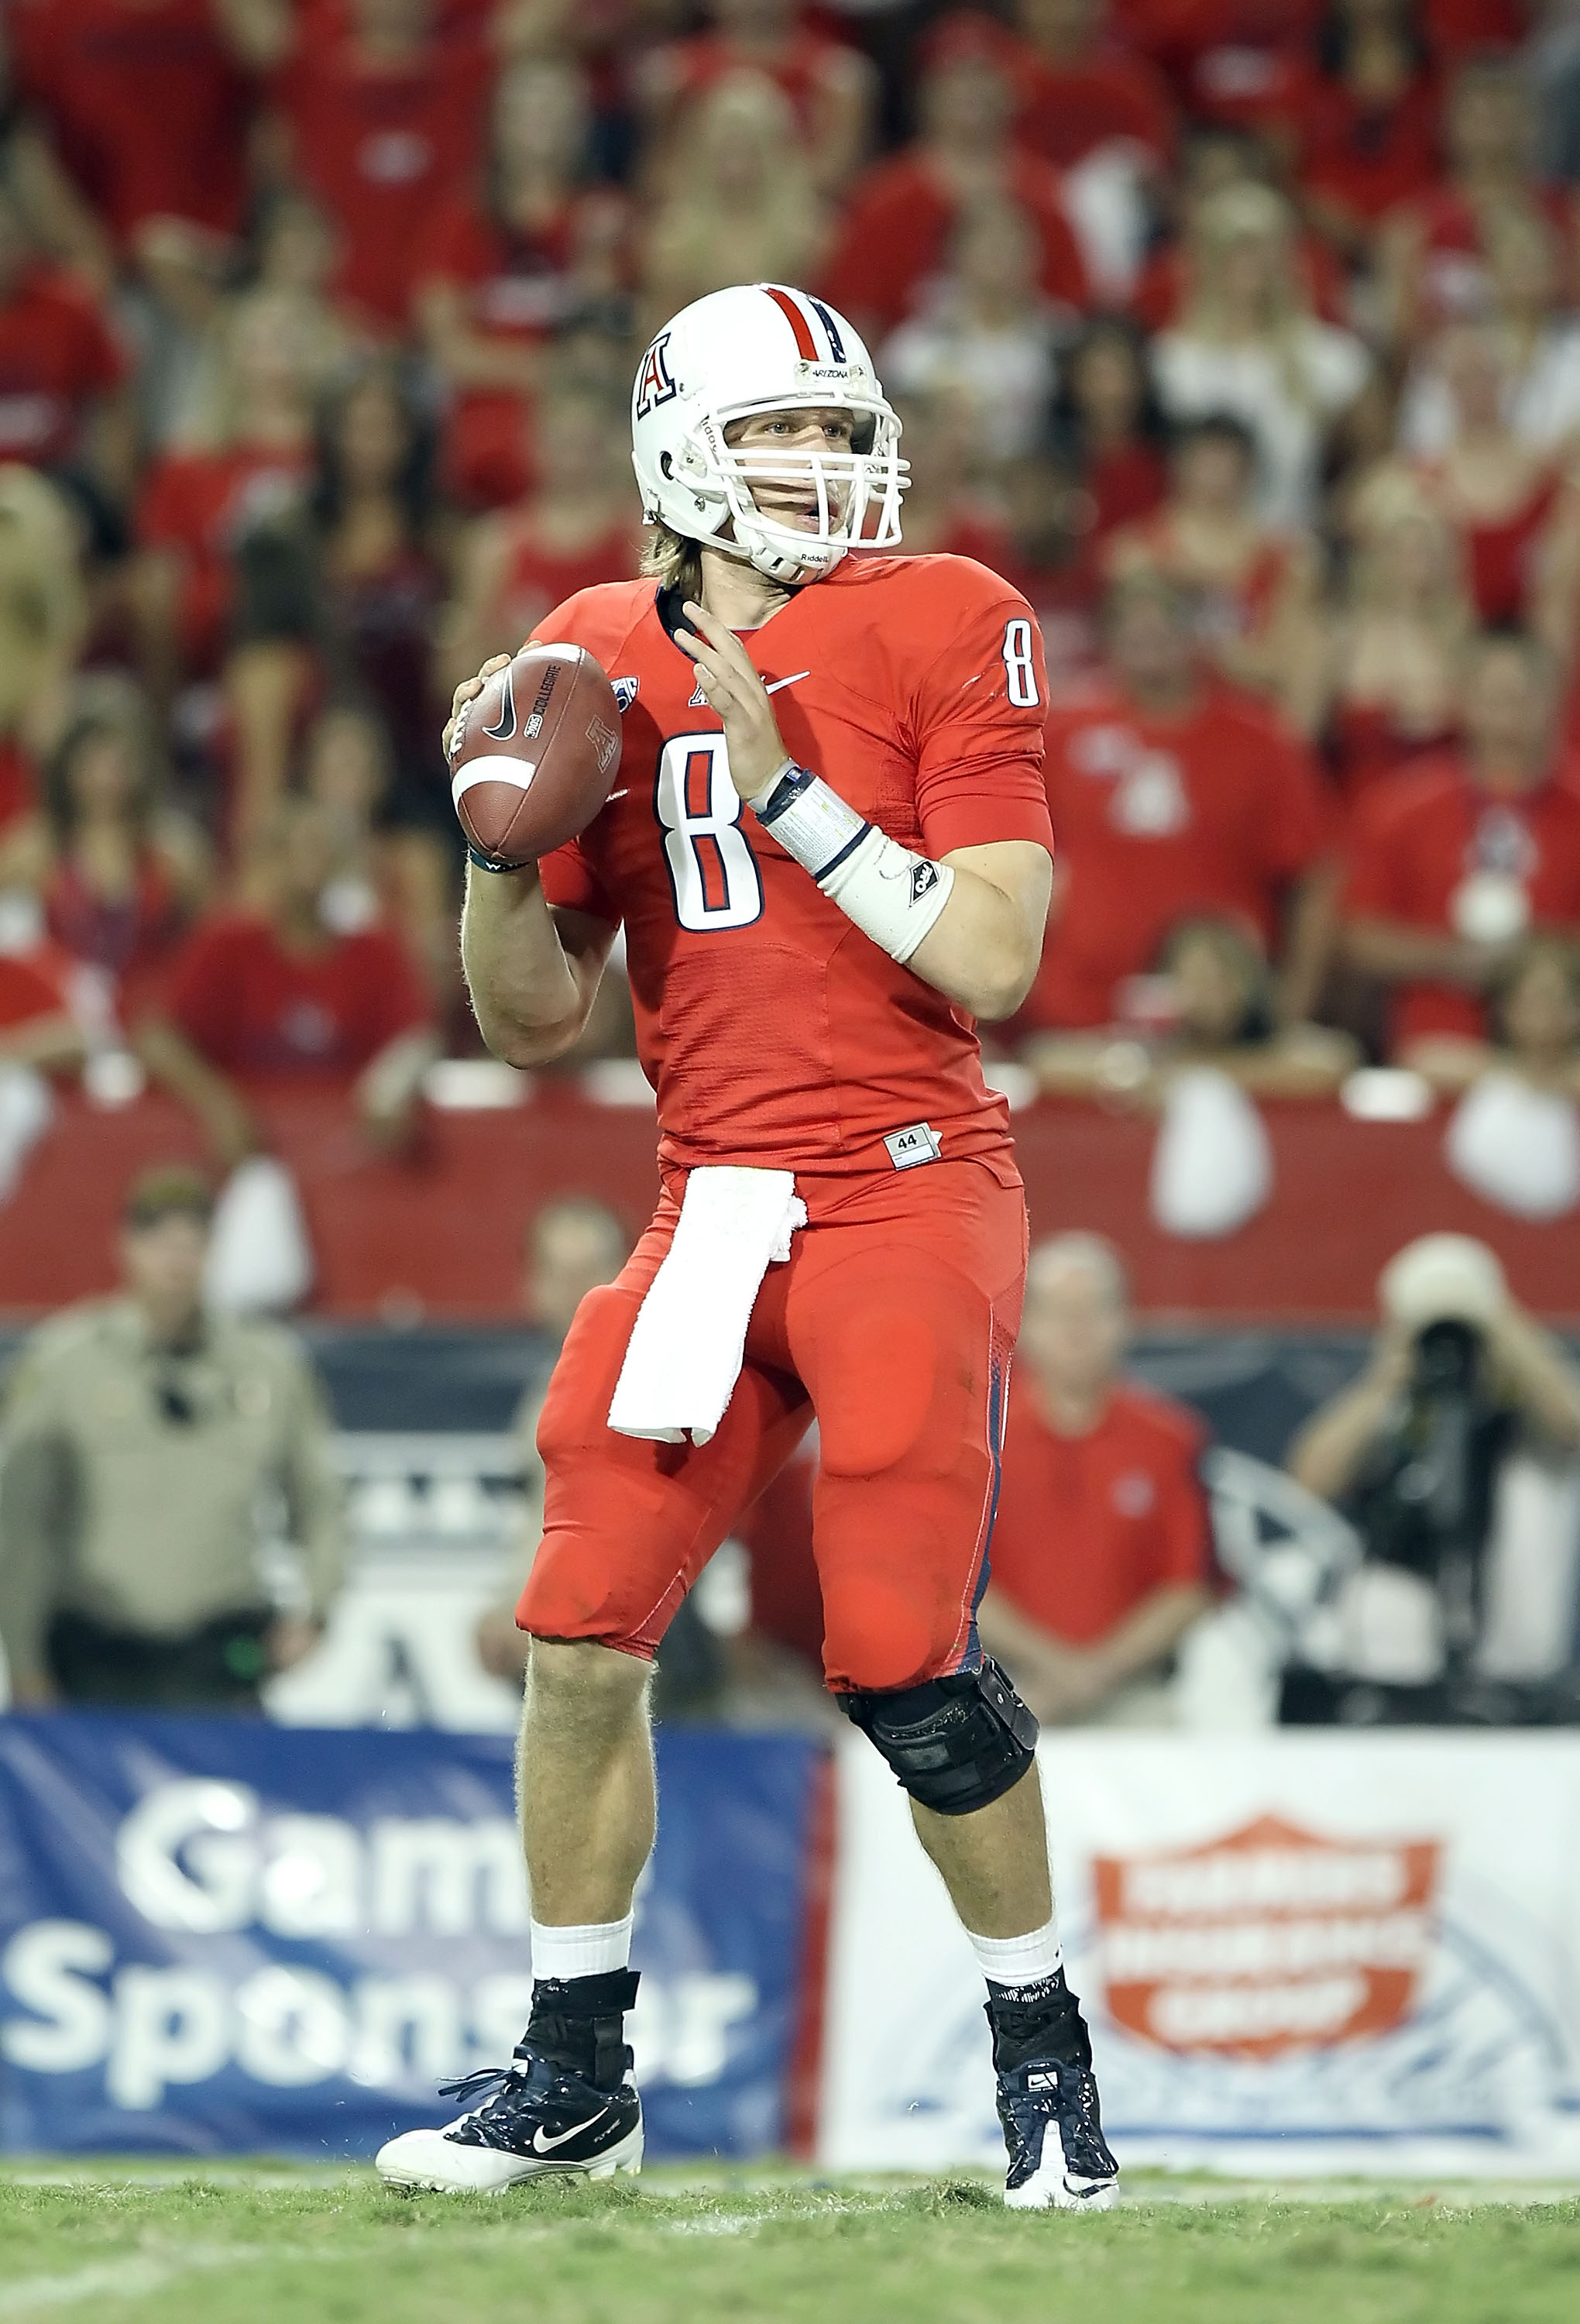 TUCSON, AZ - SEPTEMBER 18:  Quarterback Nick Foles #8 of the Arizona Wildcats drops back to pass during the college football game against the Iowa Hawkeyes at Arizona Stadium on September 18, 2010 in Tucson, Arizona. The Wildcats defeated the Hawkeyes 34-